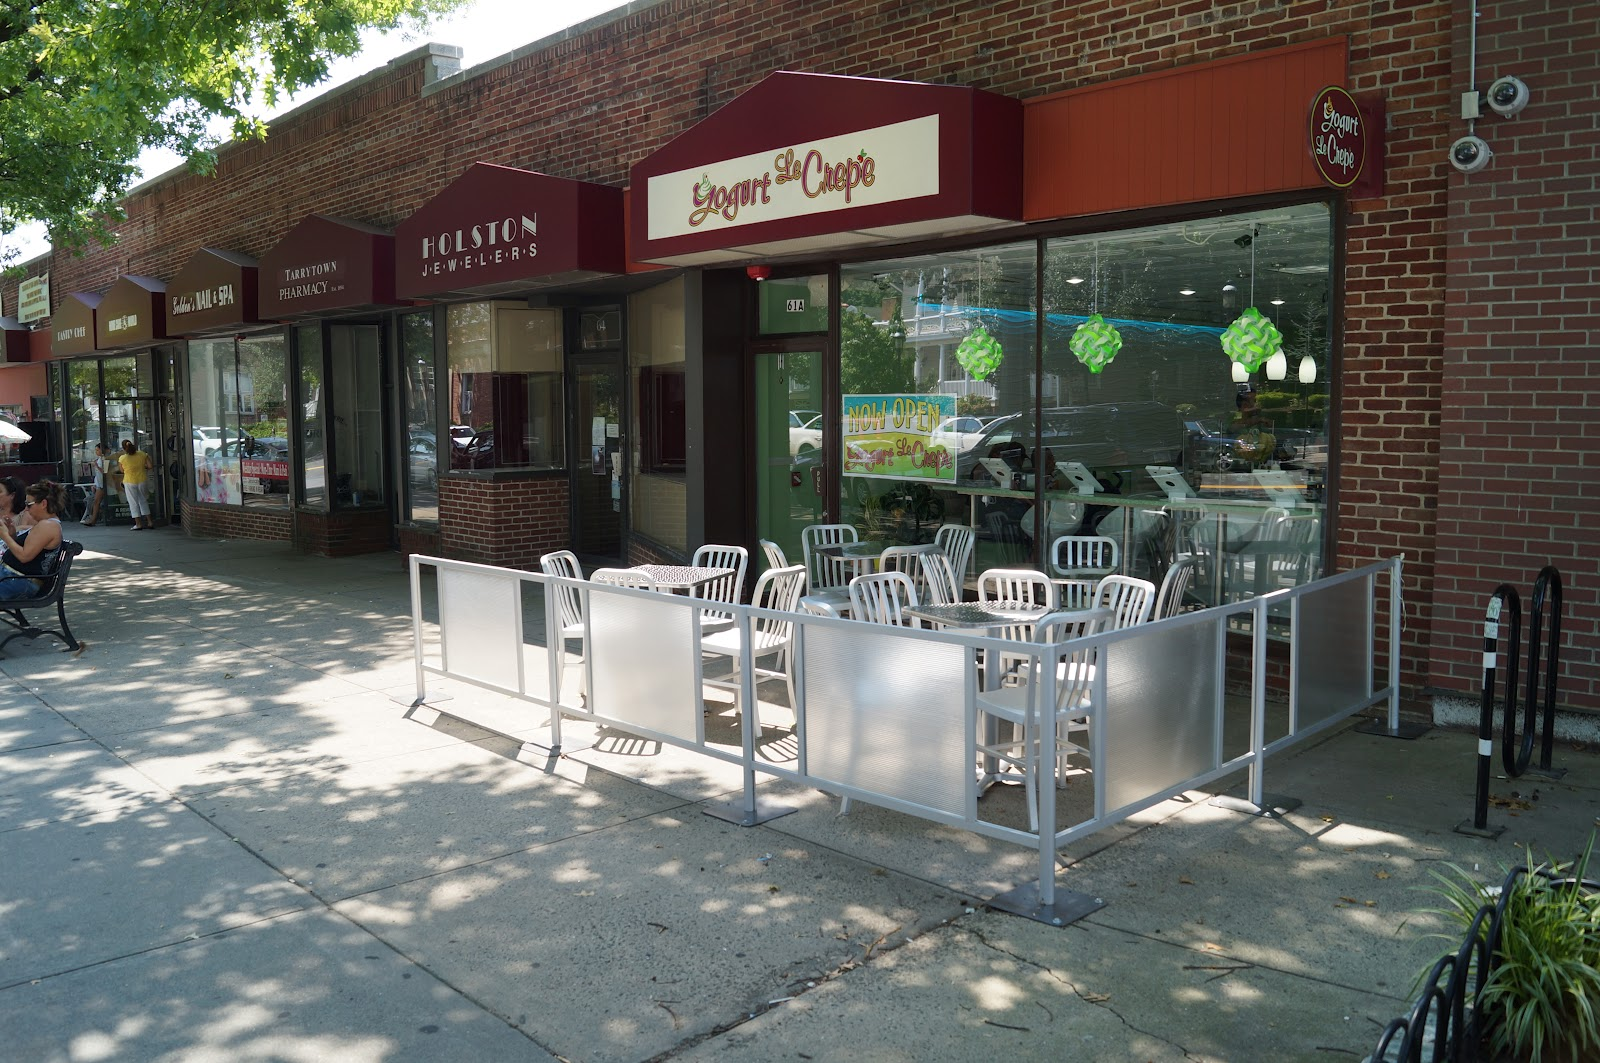 Cafe Barriers, Sidewalk Cafe Barriers, Restaurant Barriers, Cafe Fencing,  Sidewalk Fencing,